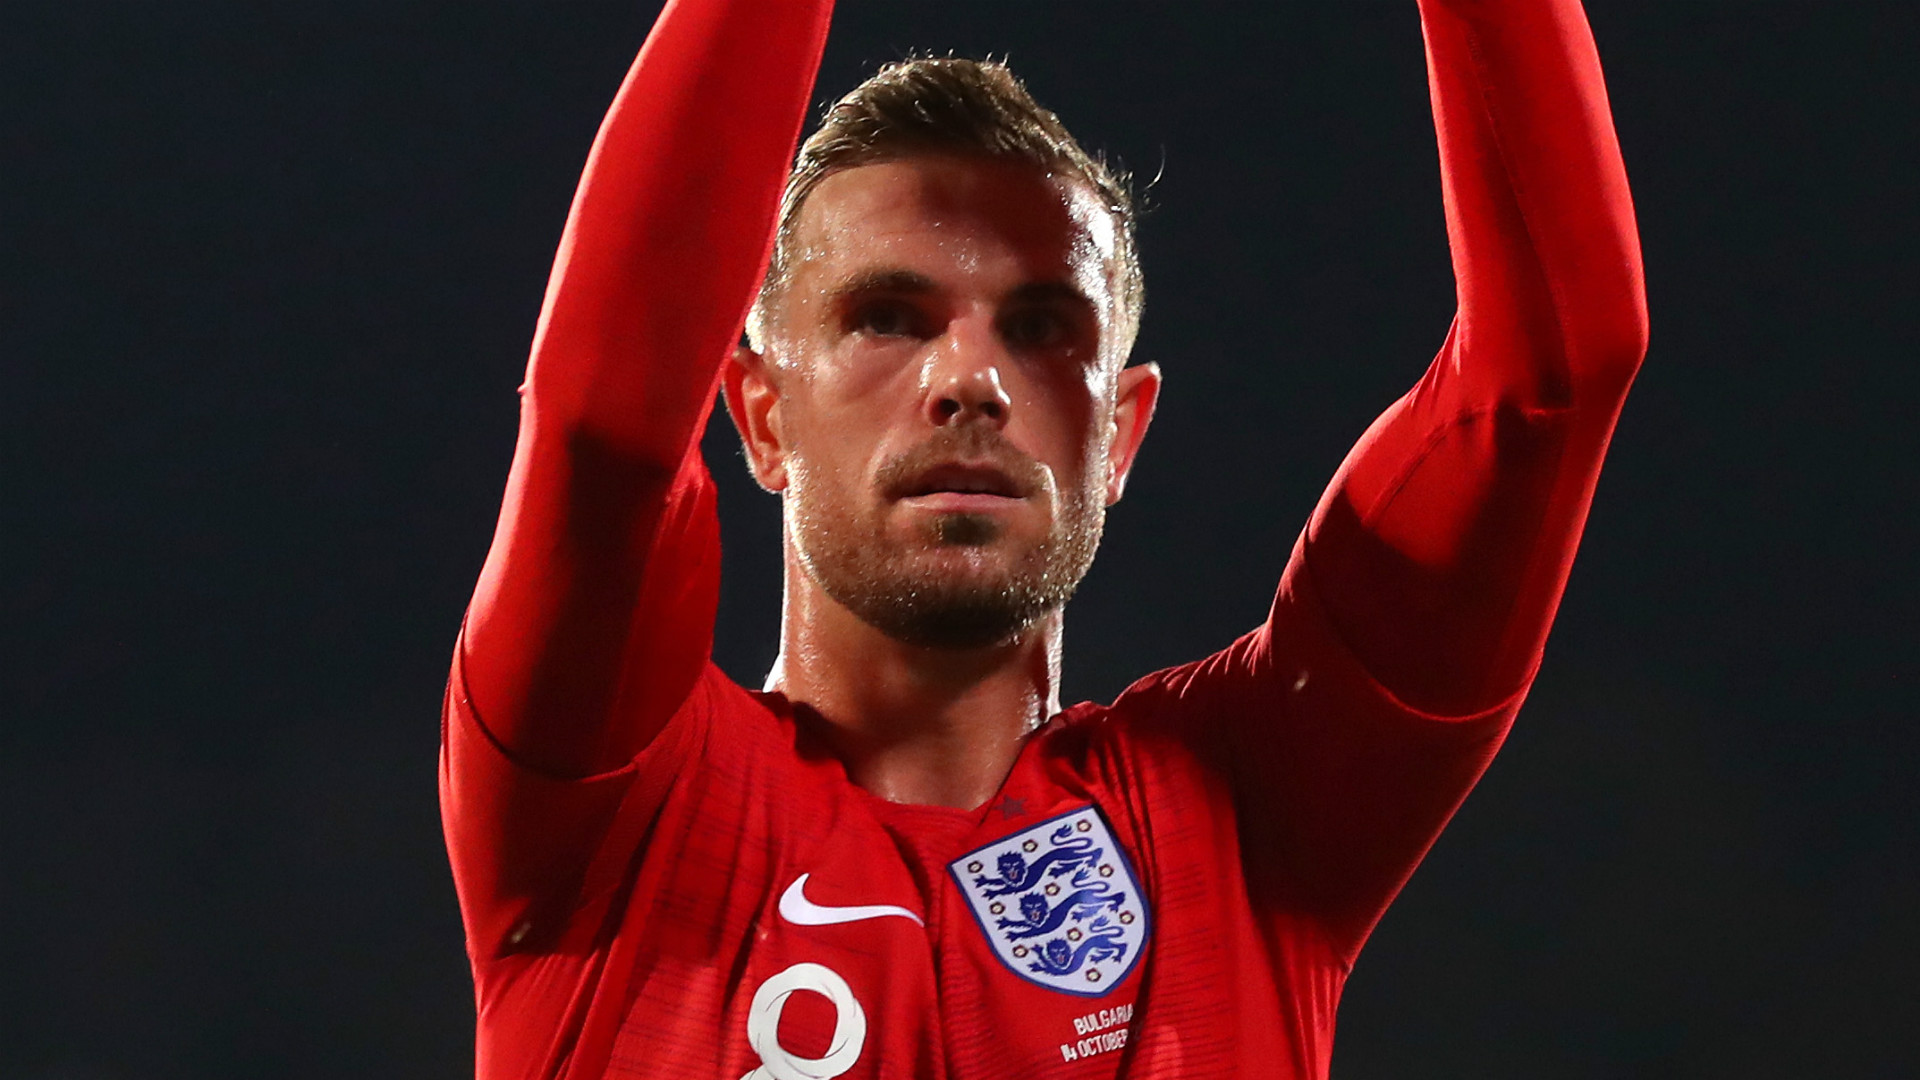 England wanted to make Bulgaria 'suffer' for racist chanting, says Henderson